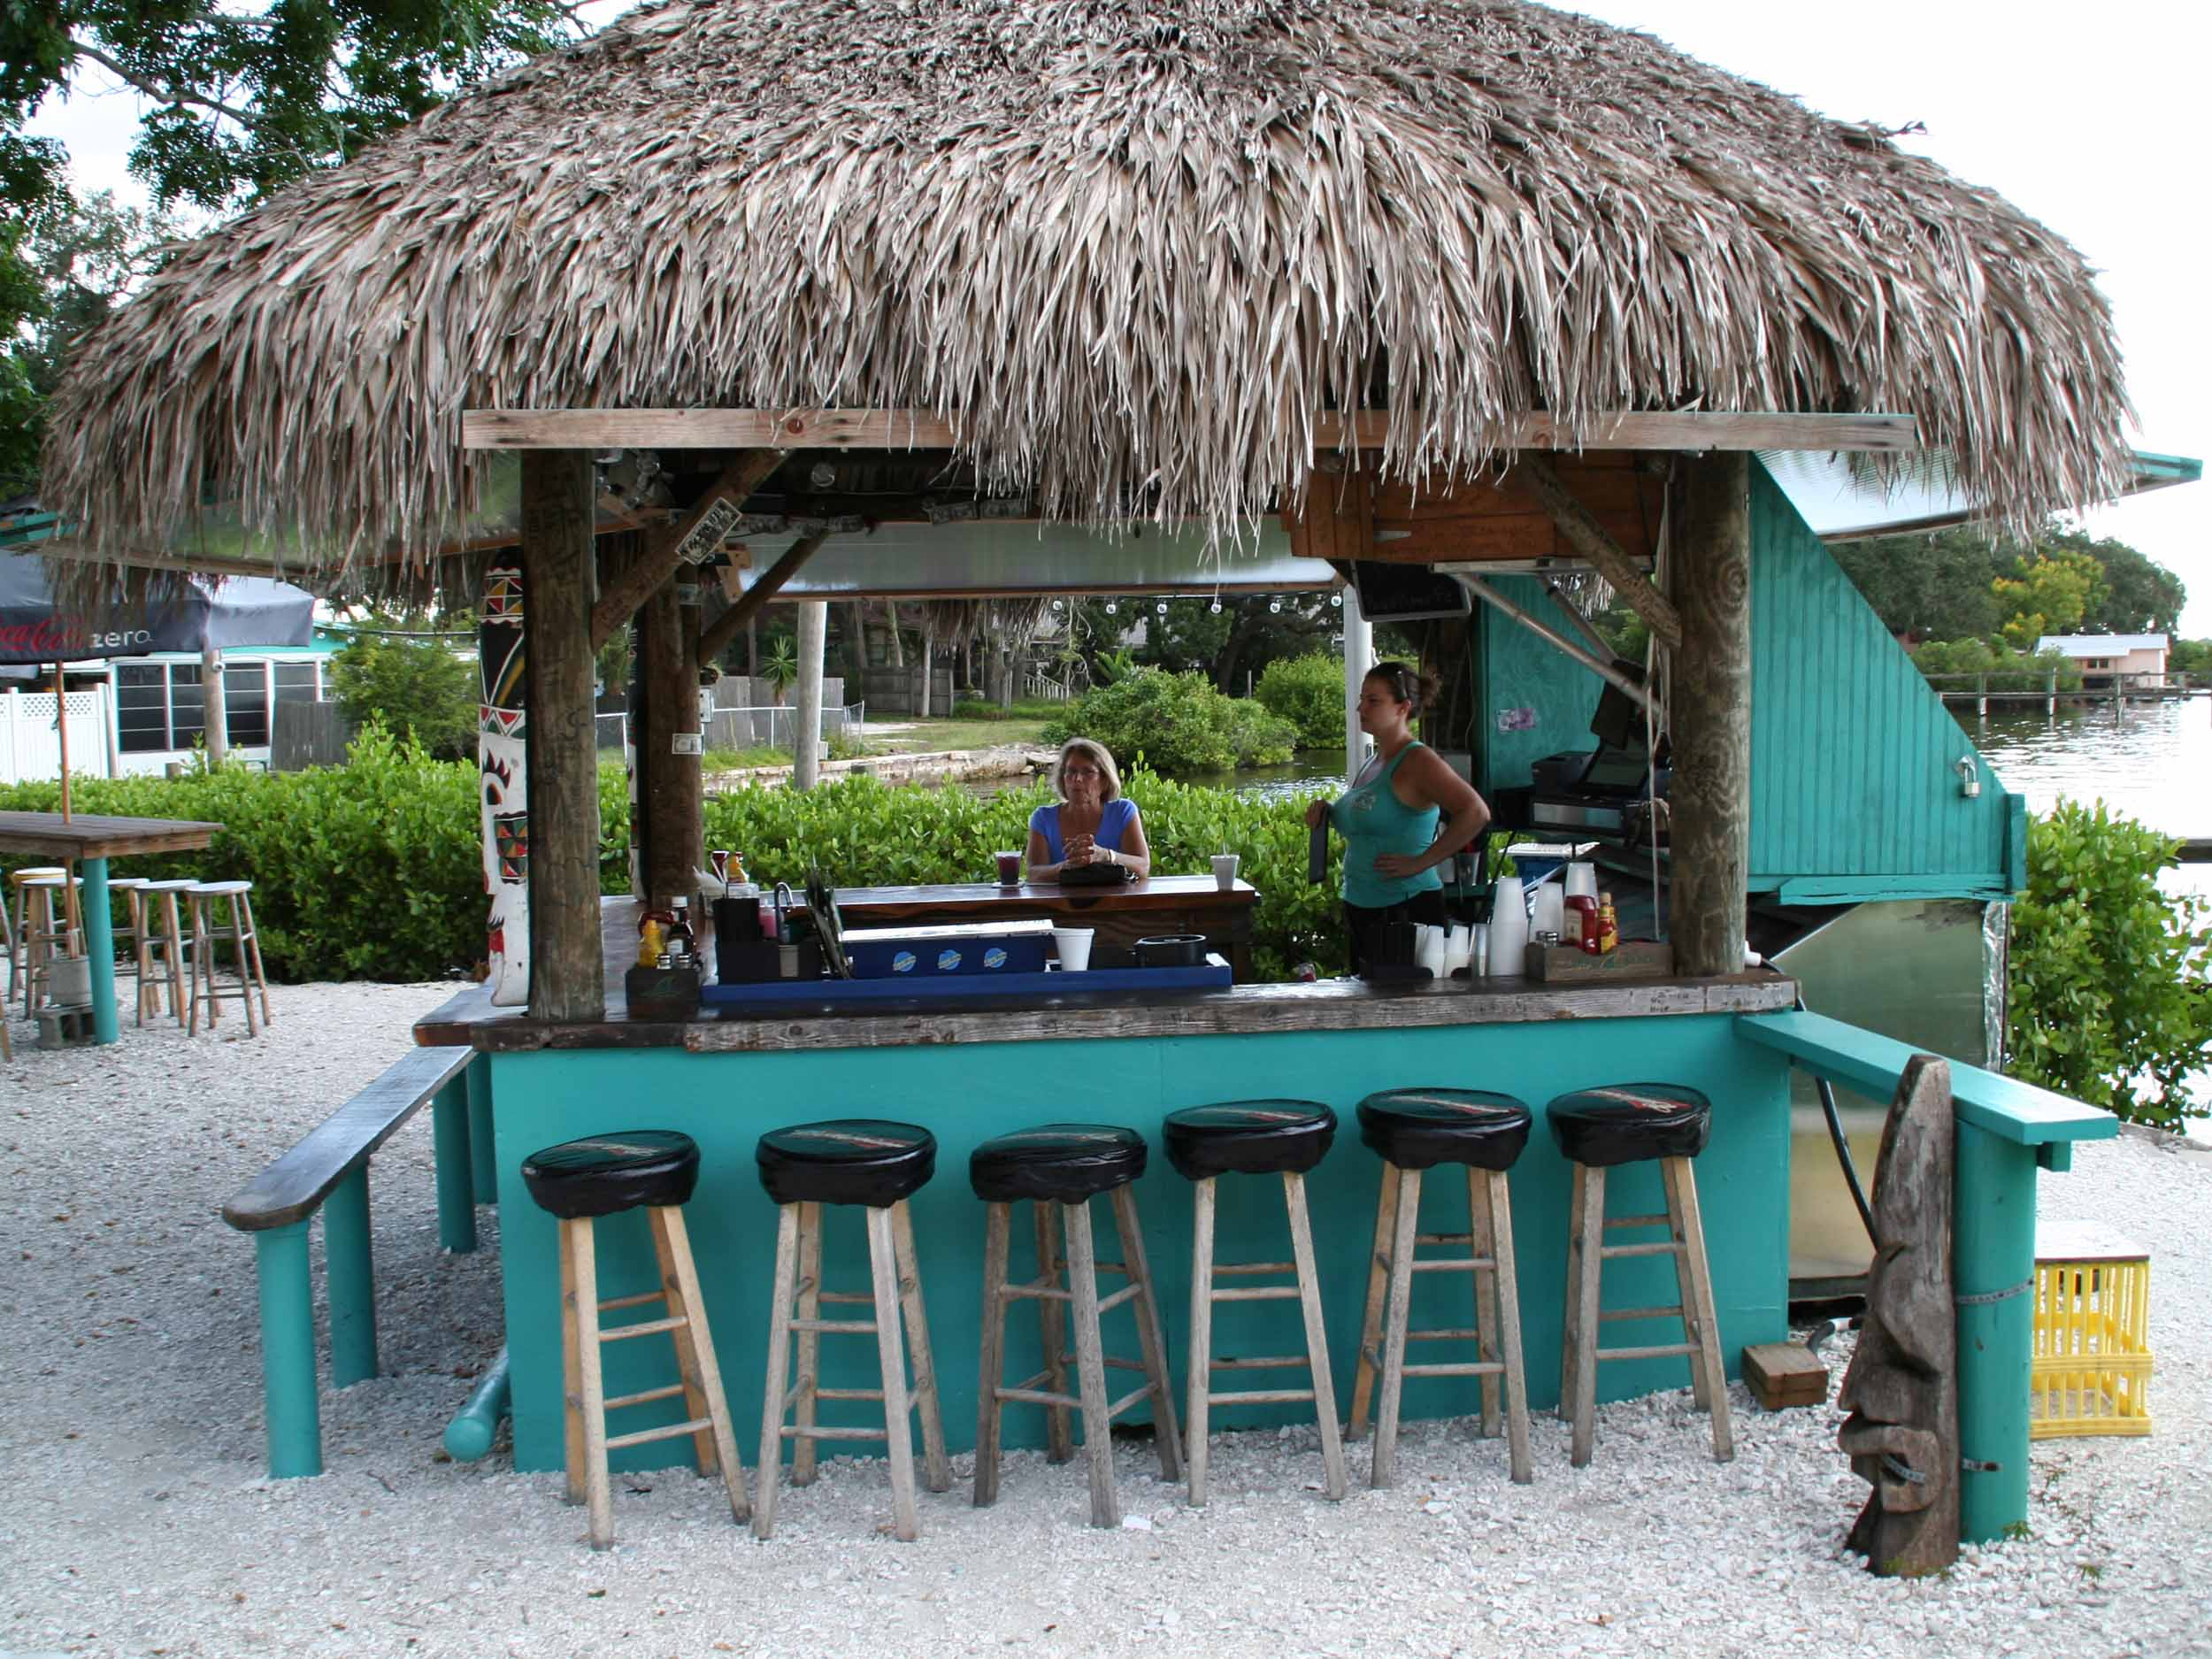 Woody's River Roo Pub and Grill Tiki Bar